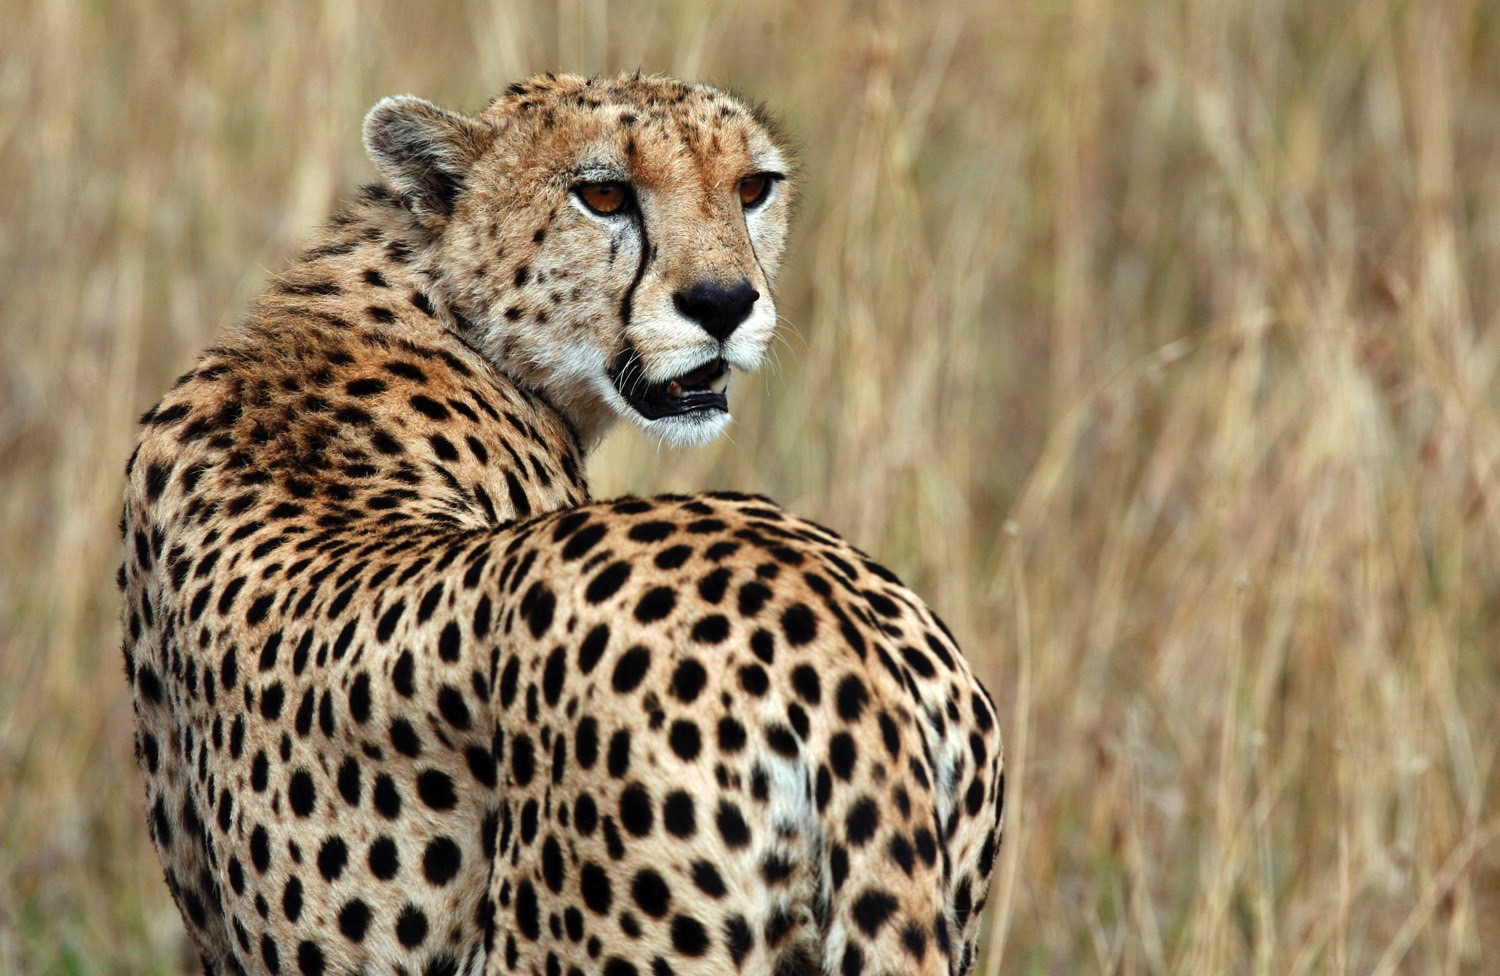 Cheetahs Return to Malawi After Decades